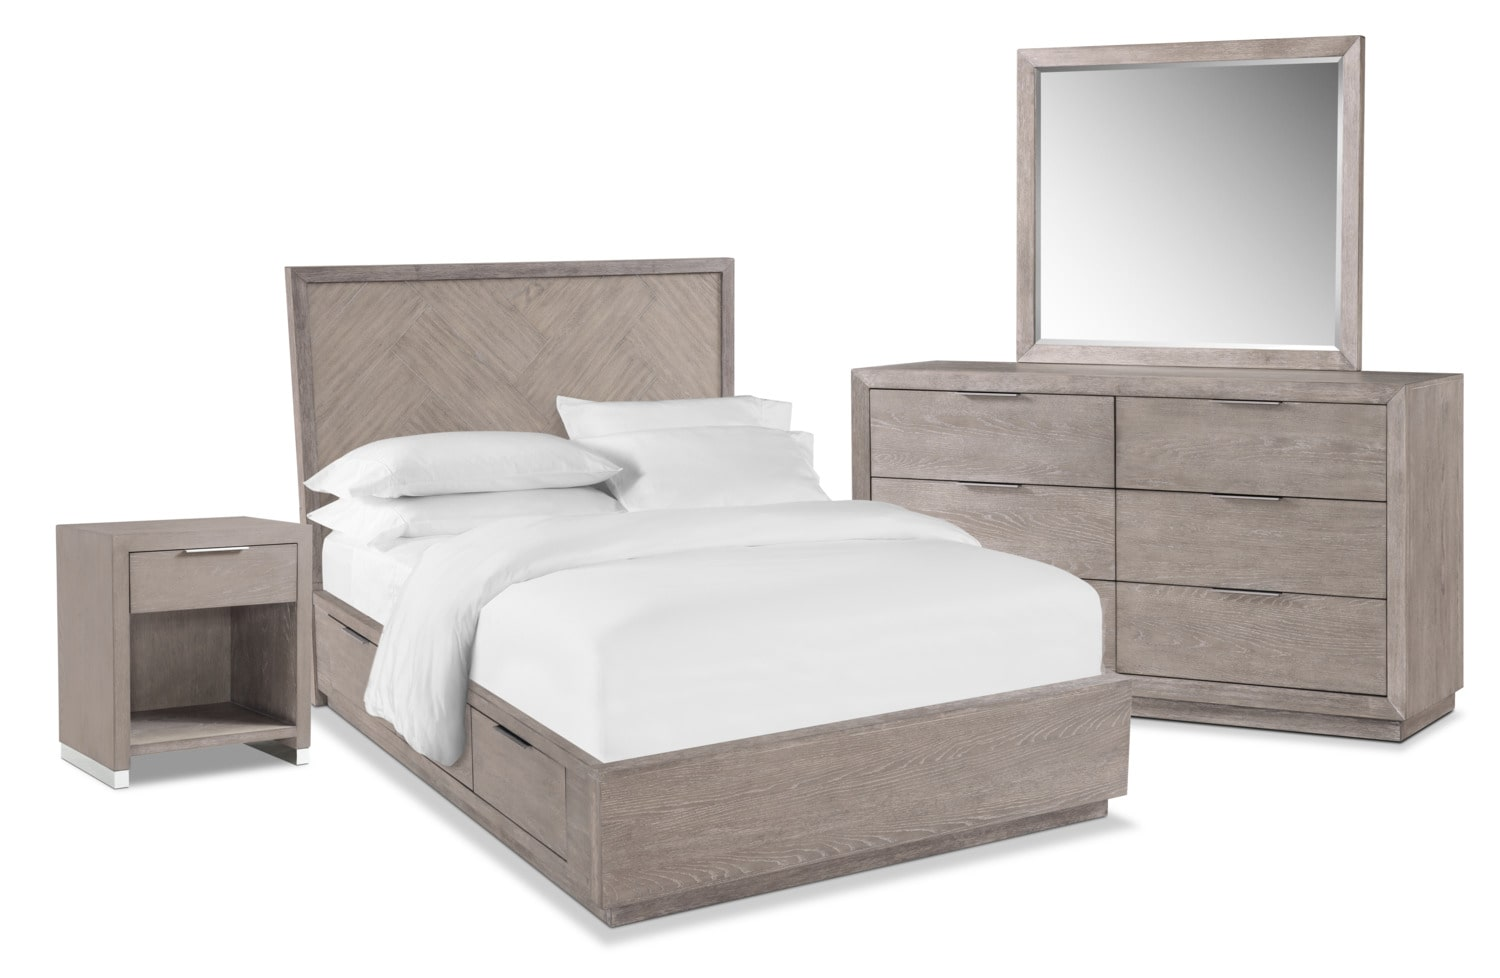 Zen 6 Piece Storage Bedroom Set With Nightstand Dresser And Mirror